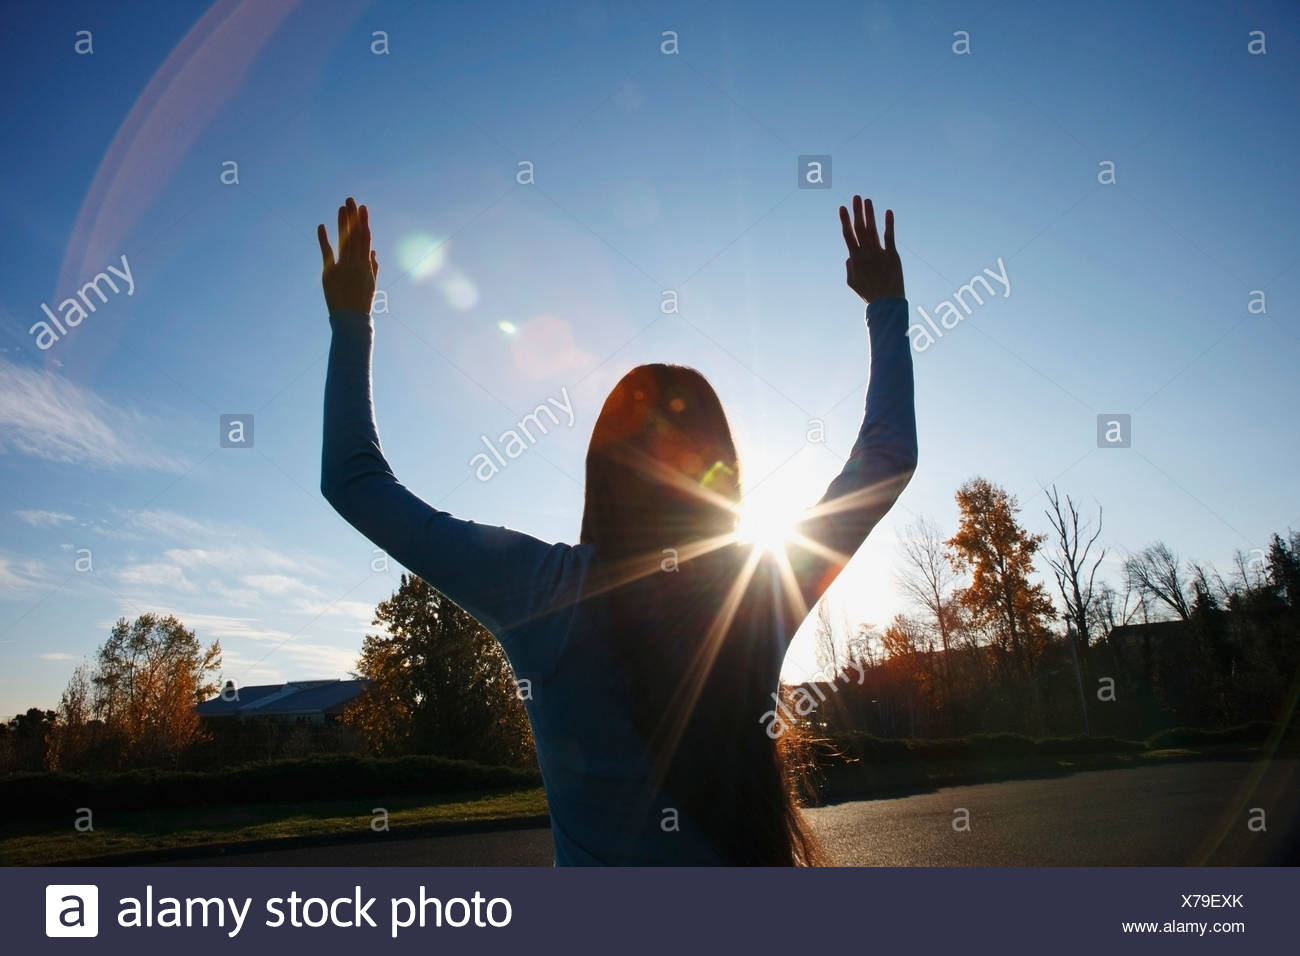 Beams Of Sunlight And A Circular Glare Around A Teenage Girl With Her Hands Raised - Stock Image